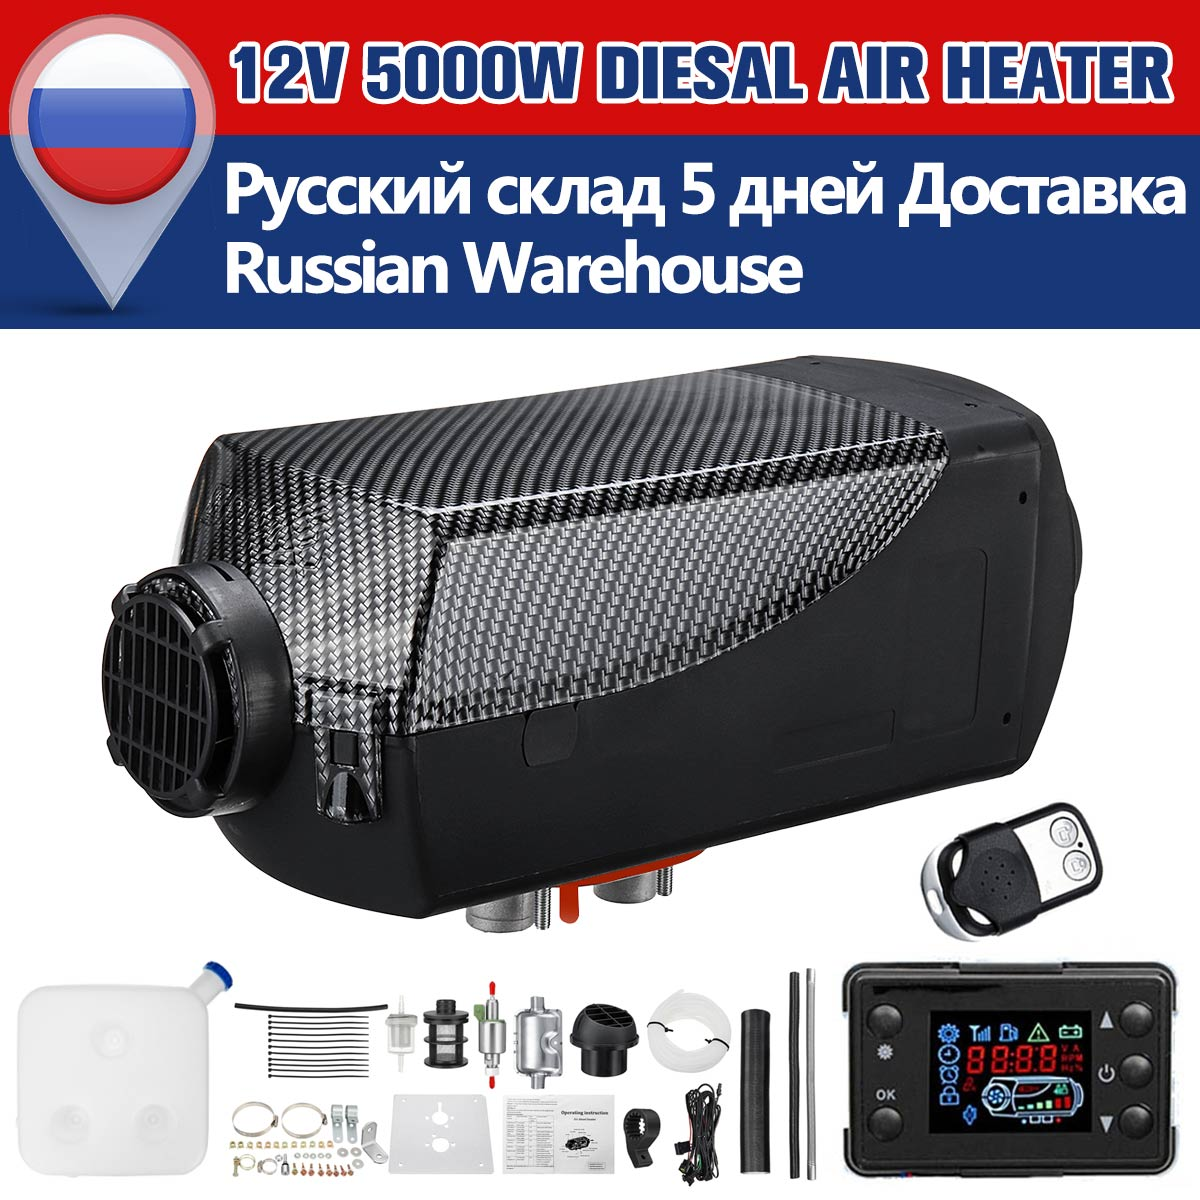 Fast Ship 12V 5KW Diesel Air Heater LCD For Car Trucks Boats Motor Home Monitor for RV Motorhome Trailer With Remote Winter Warm